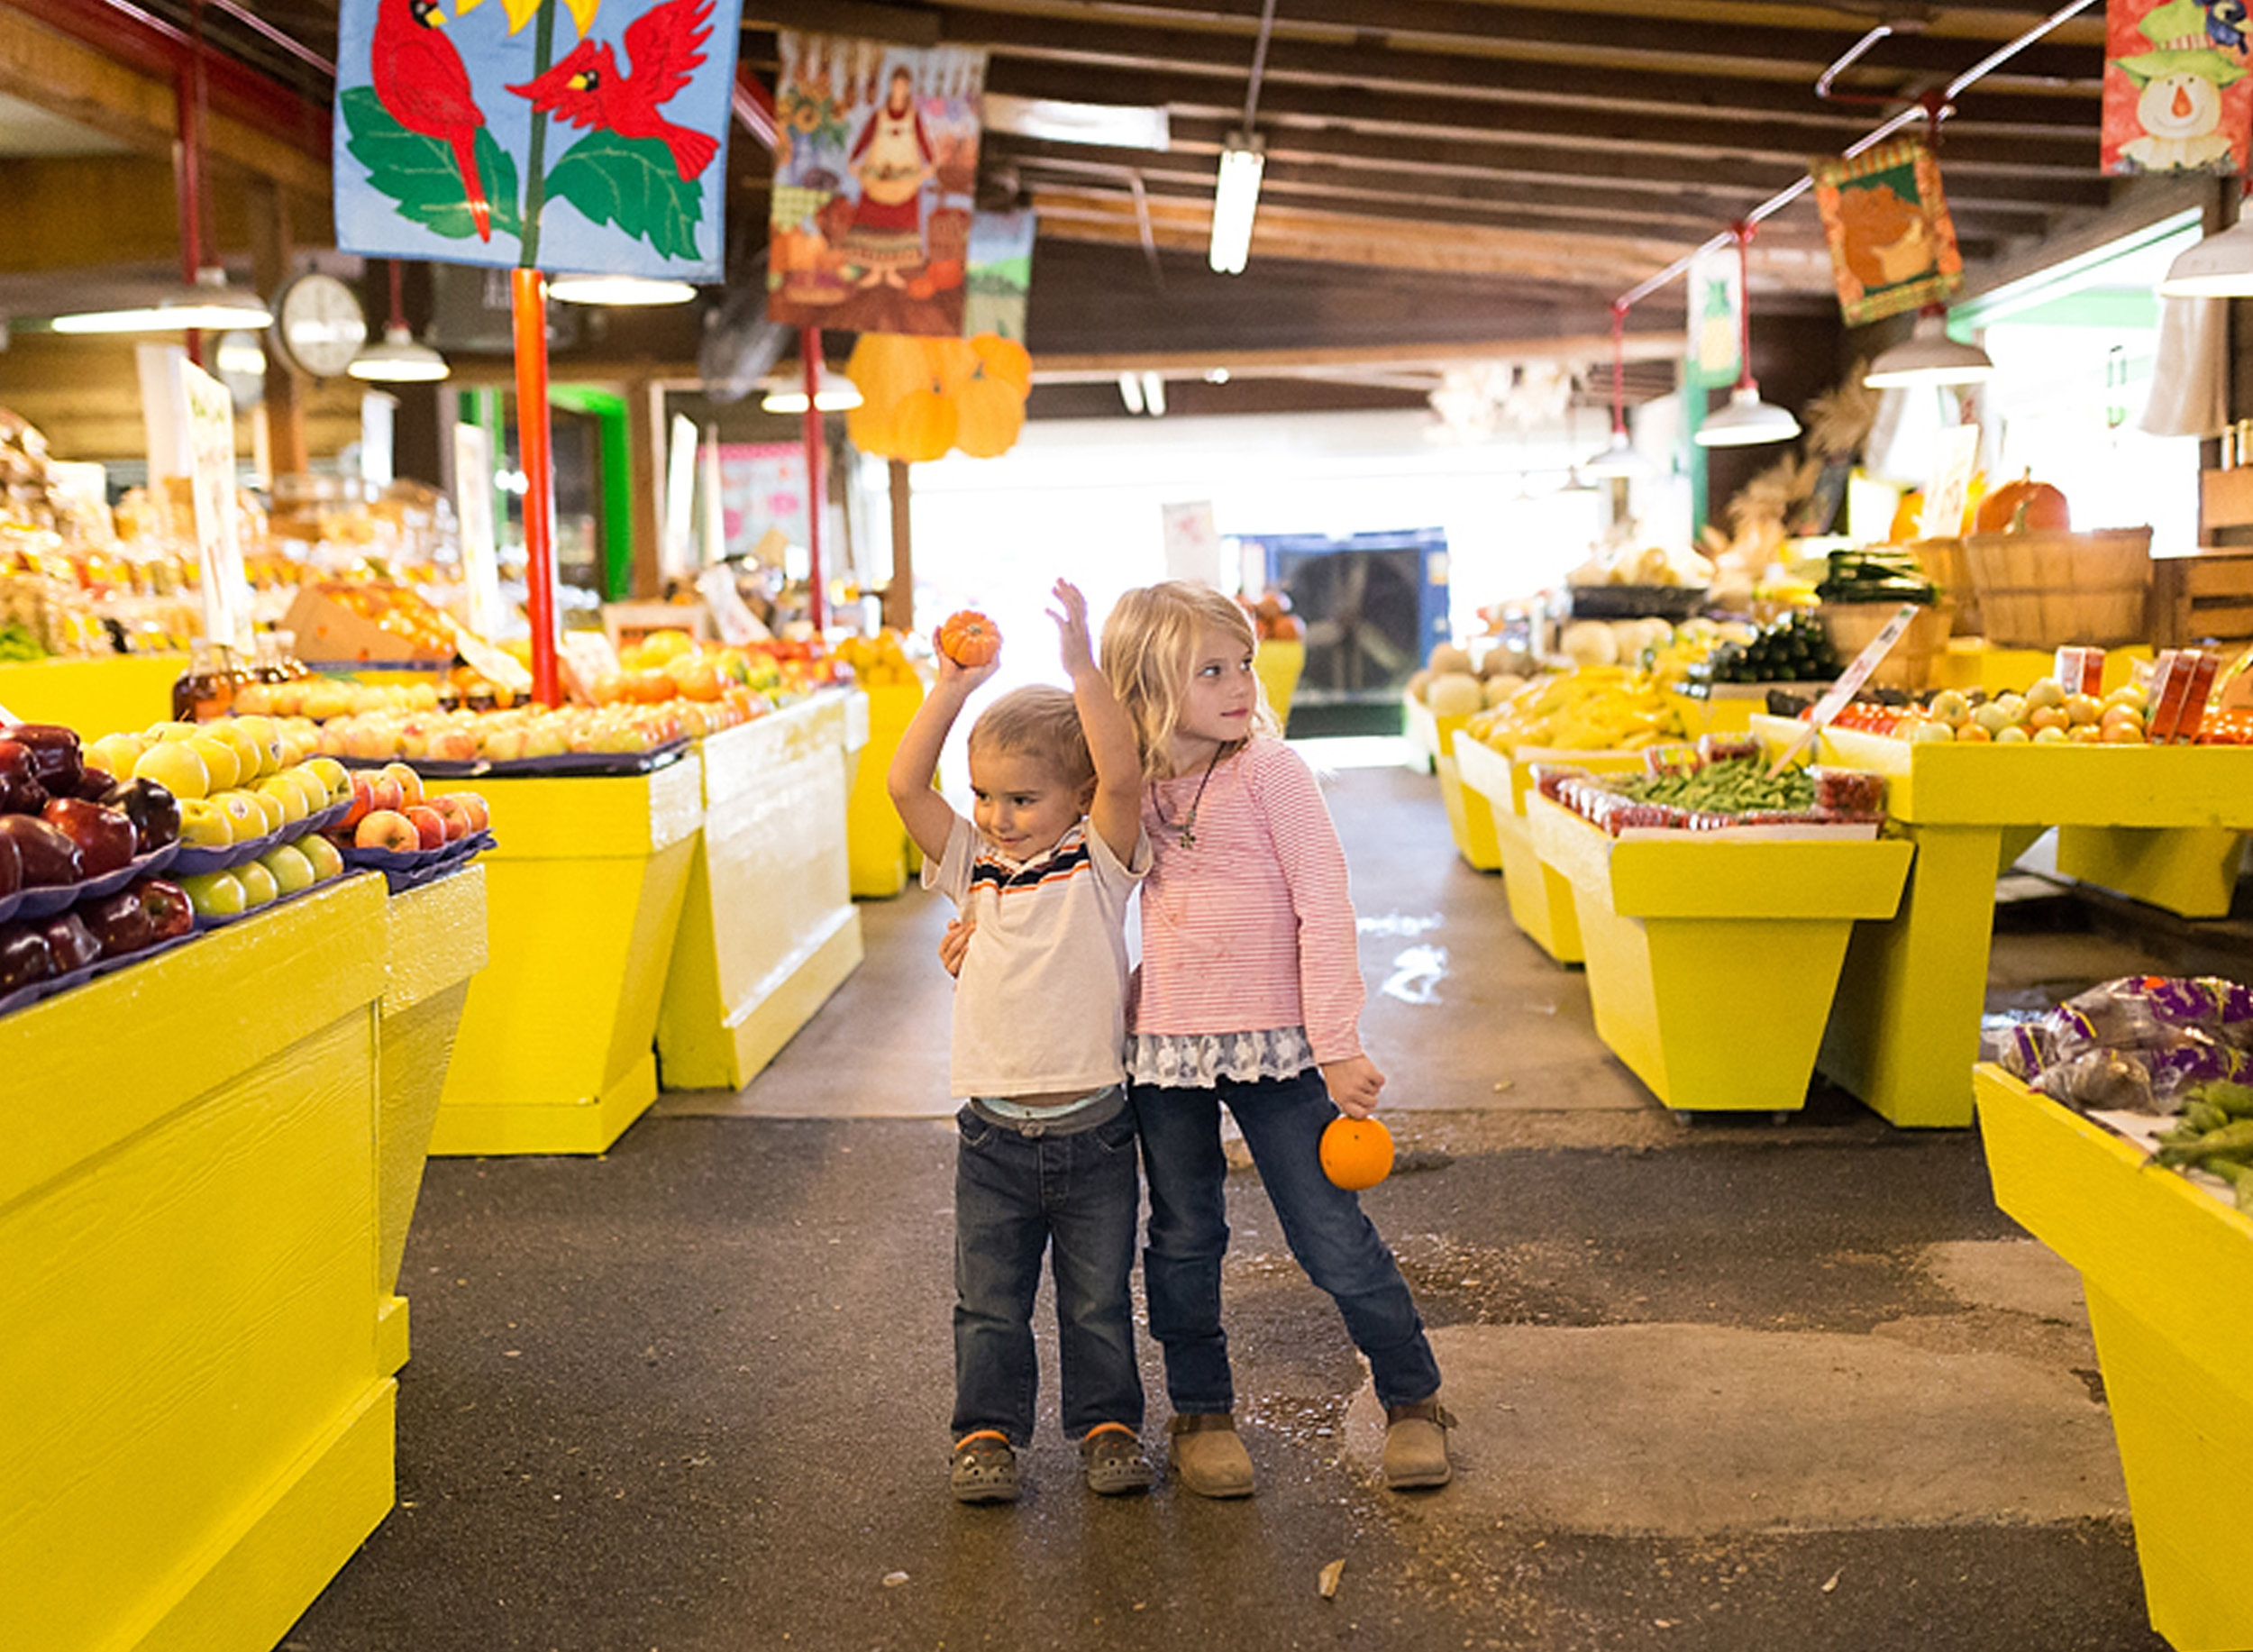 college station family photographer fall produce market